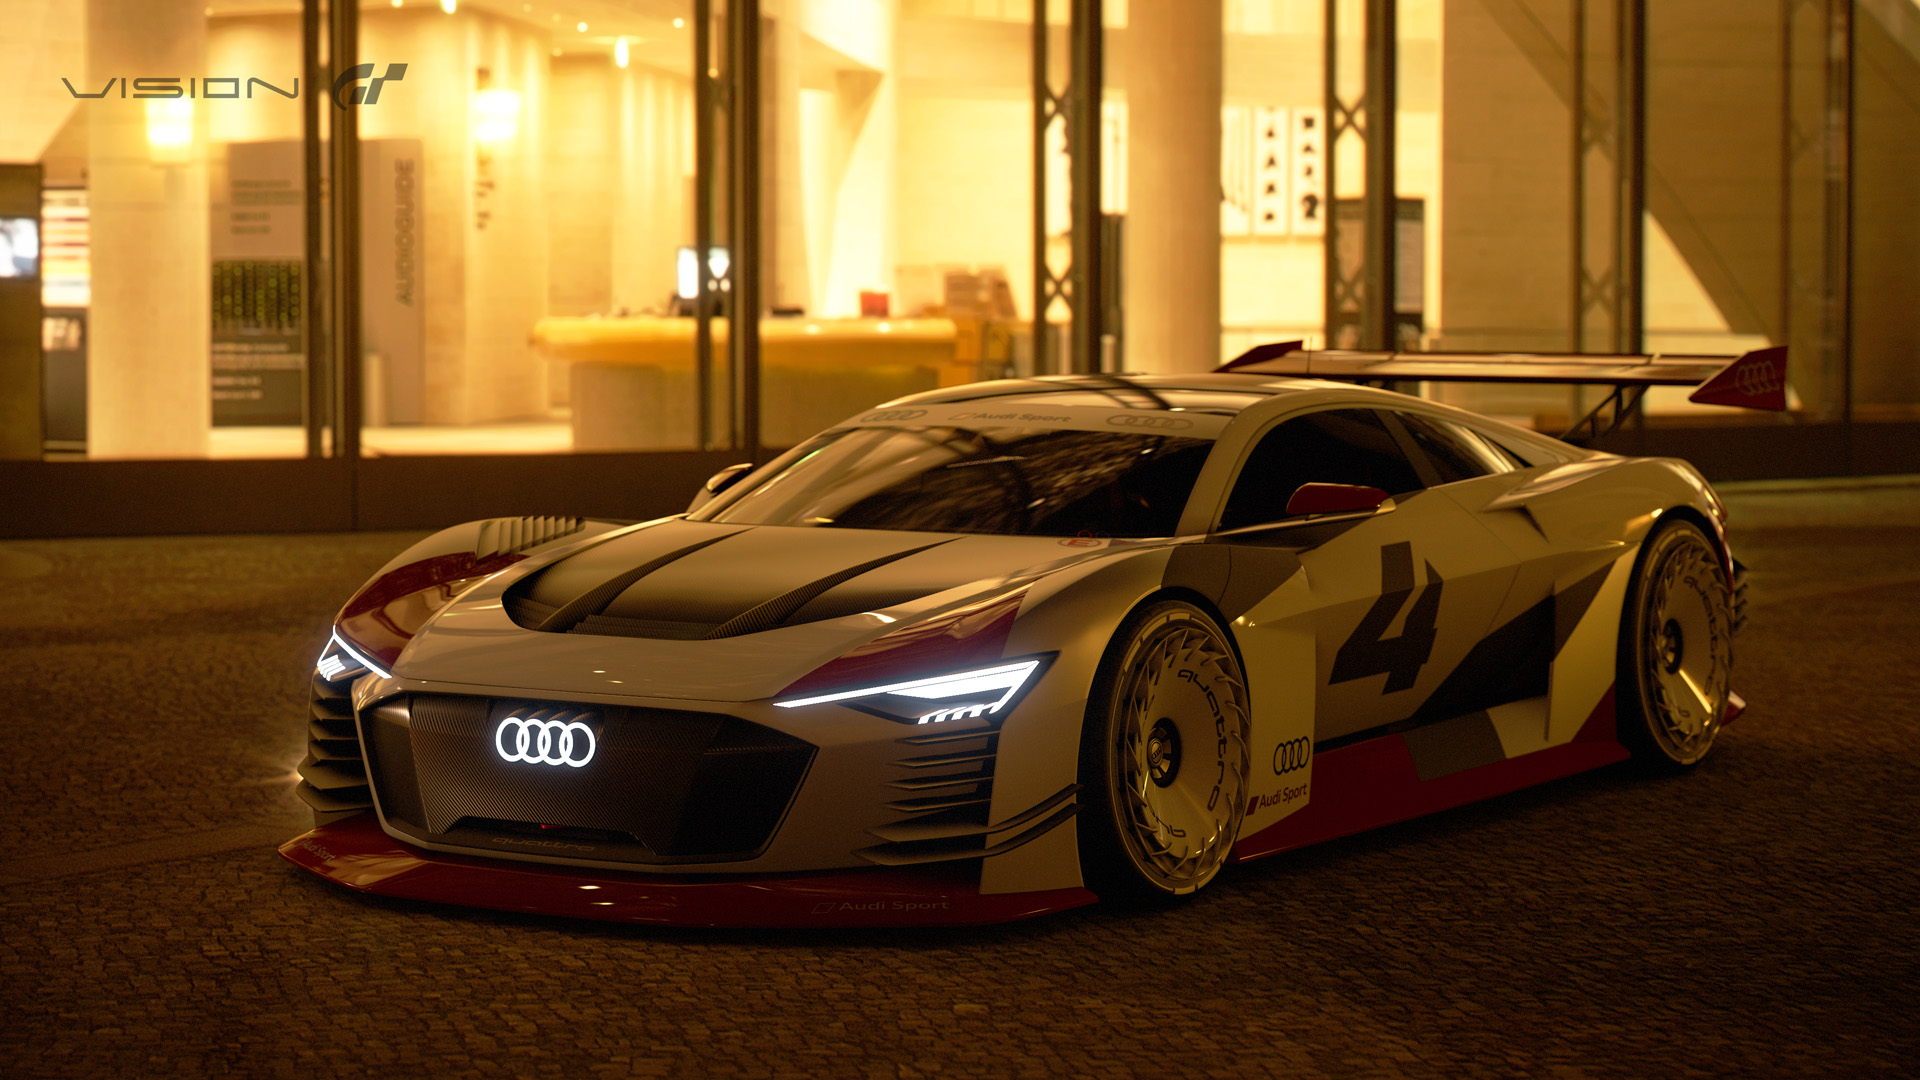 Audi Introduces Two New Quot Vision Gran Turismo Quot Cars